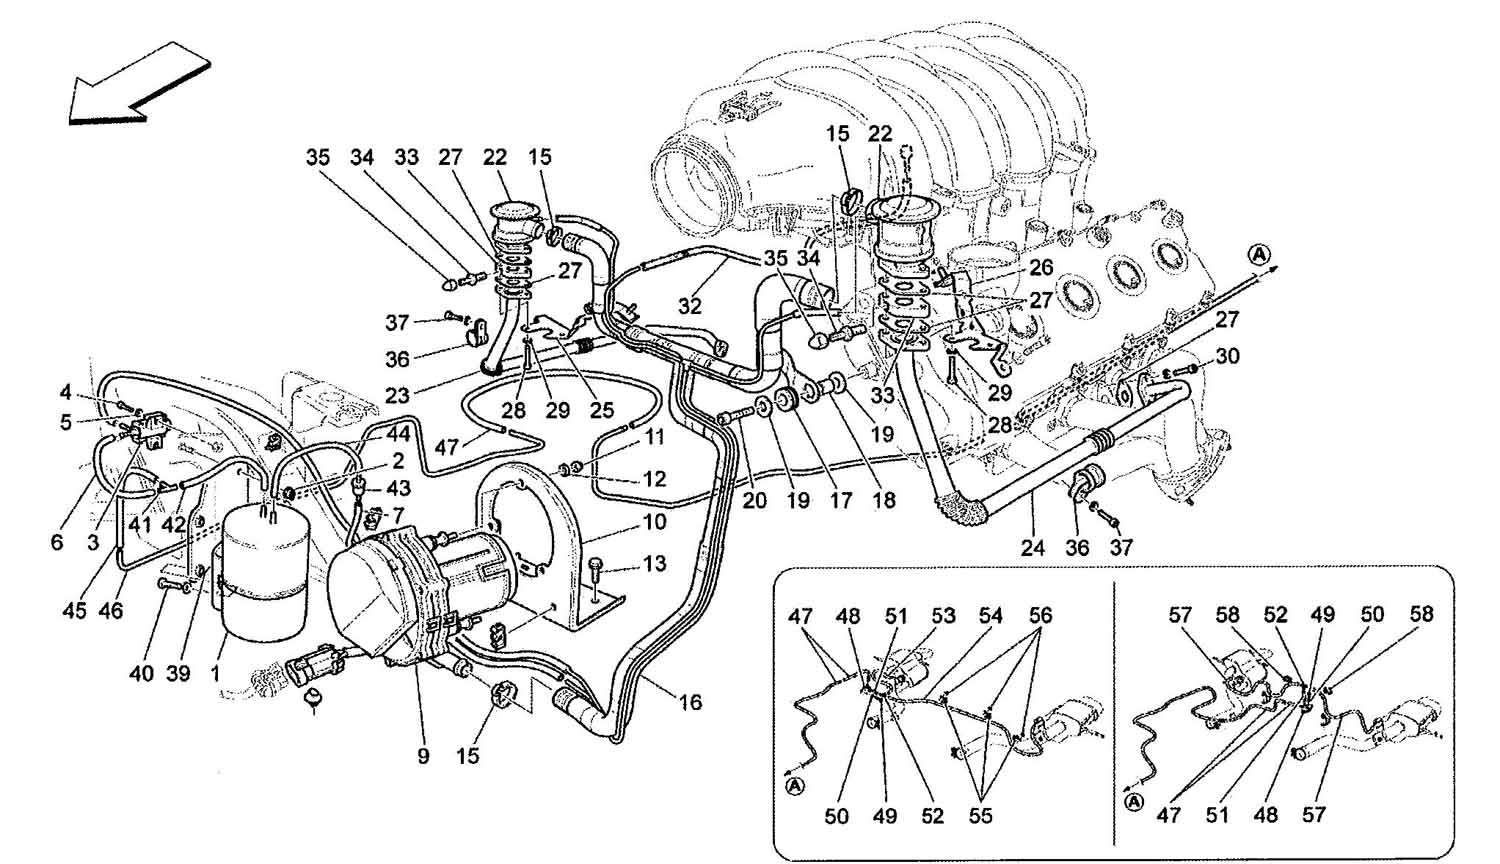 AUXILIARY AIR SYSTEM